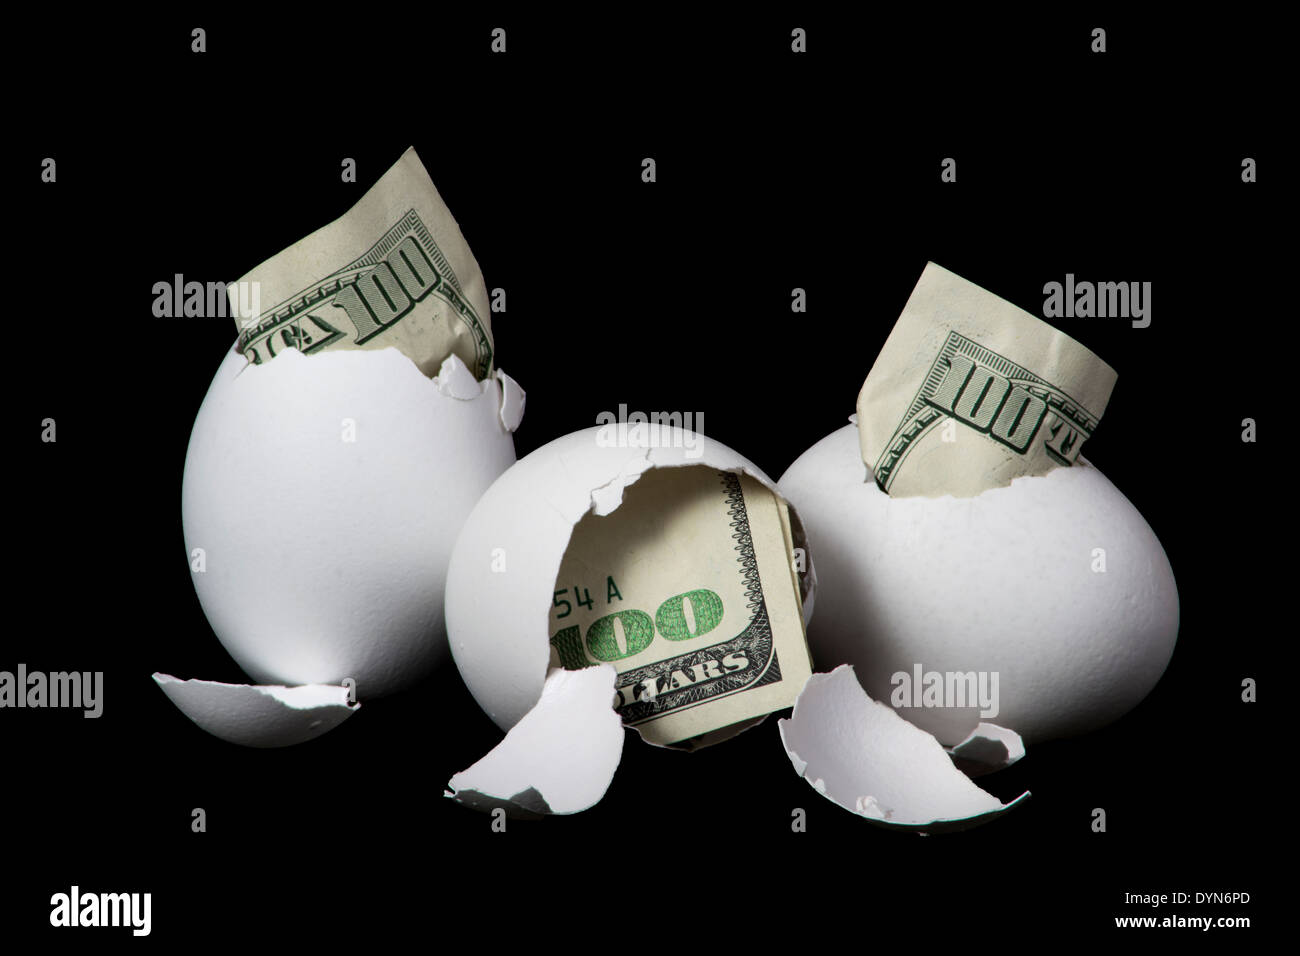 Hundred dollar bills hatching from eggs. - Stock Image